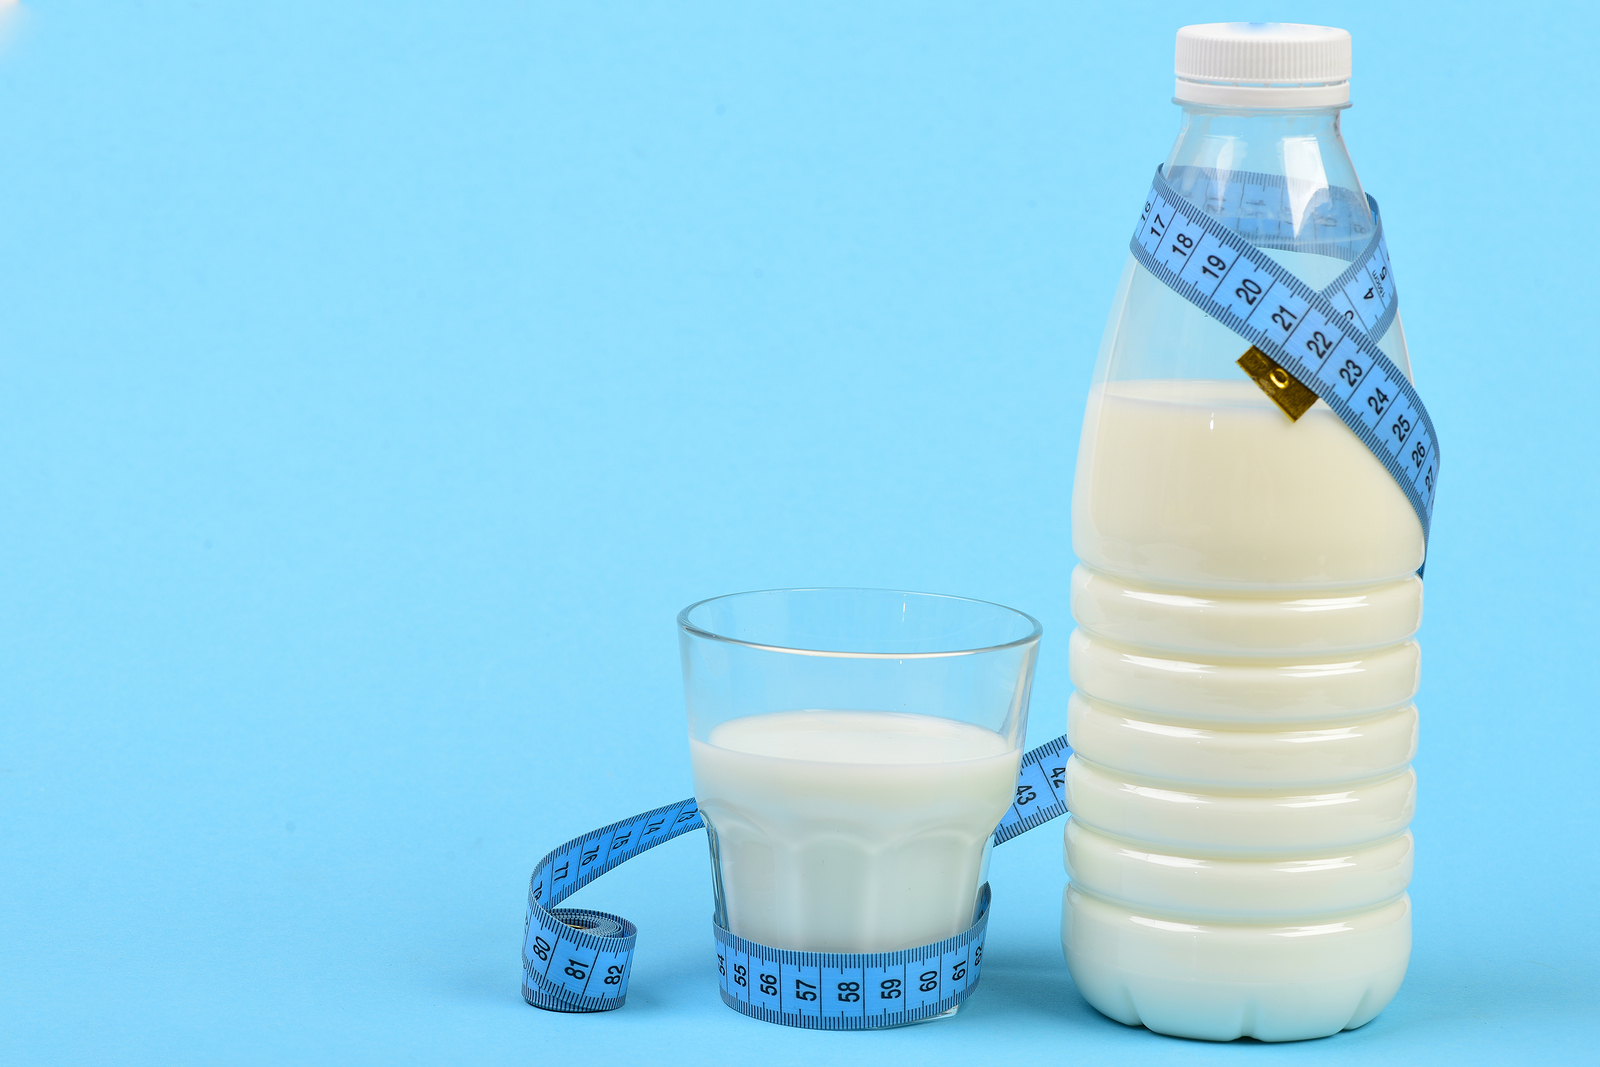 bigstock-calcium-nutrition-and-healthy--205221982.jpg